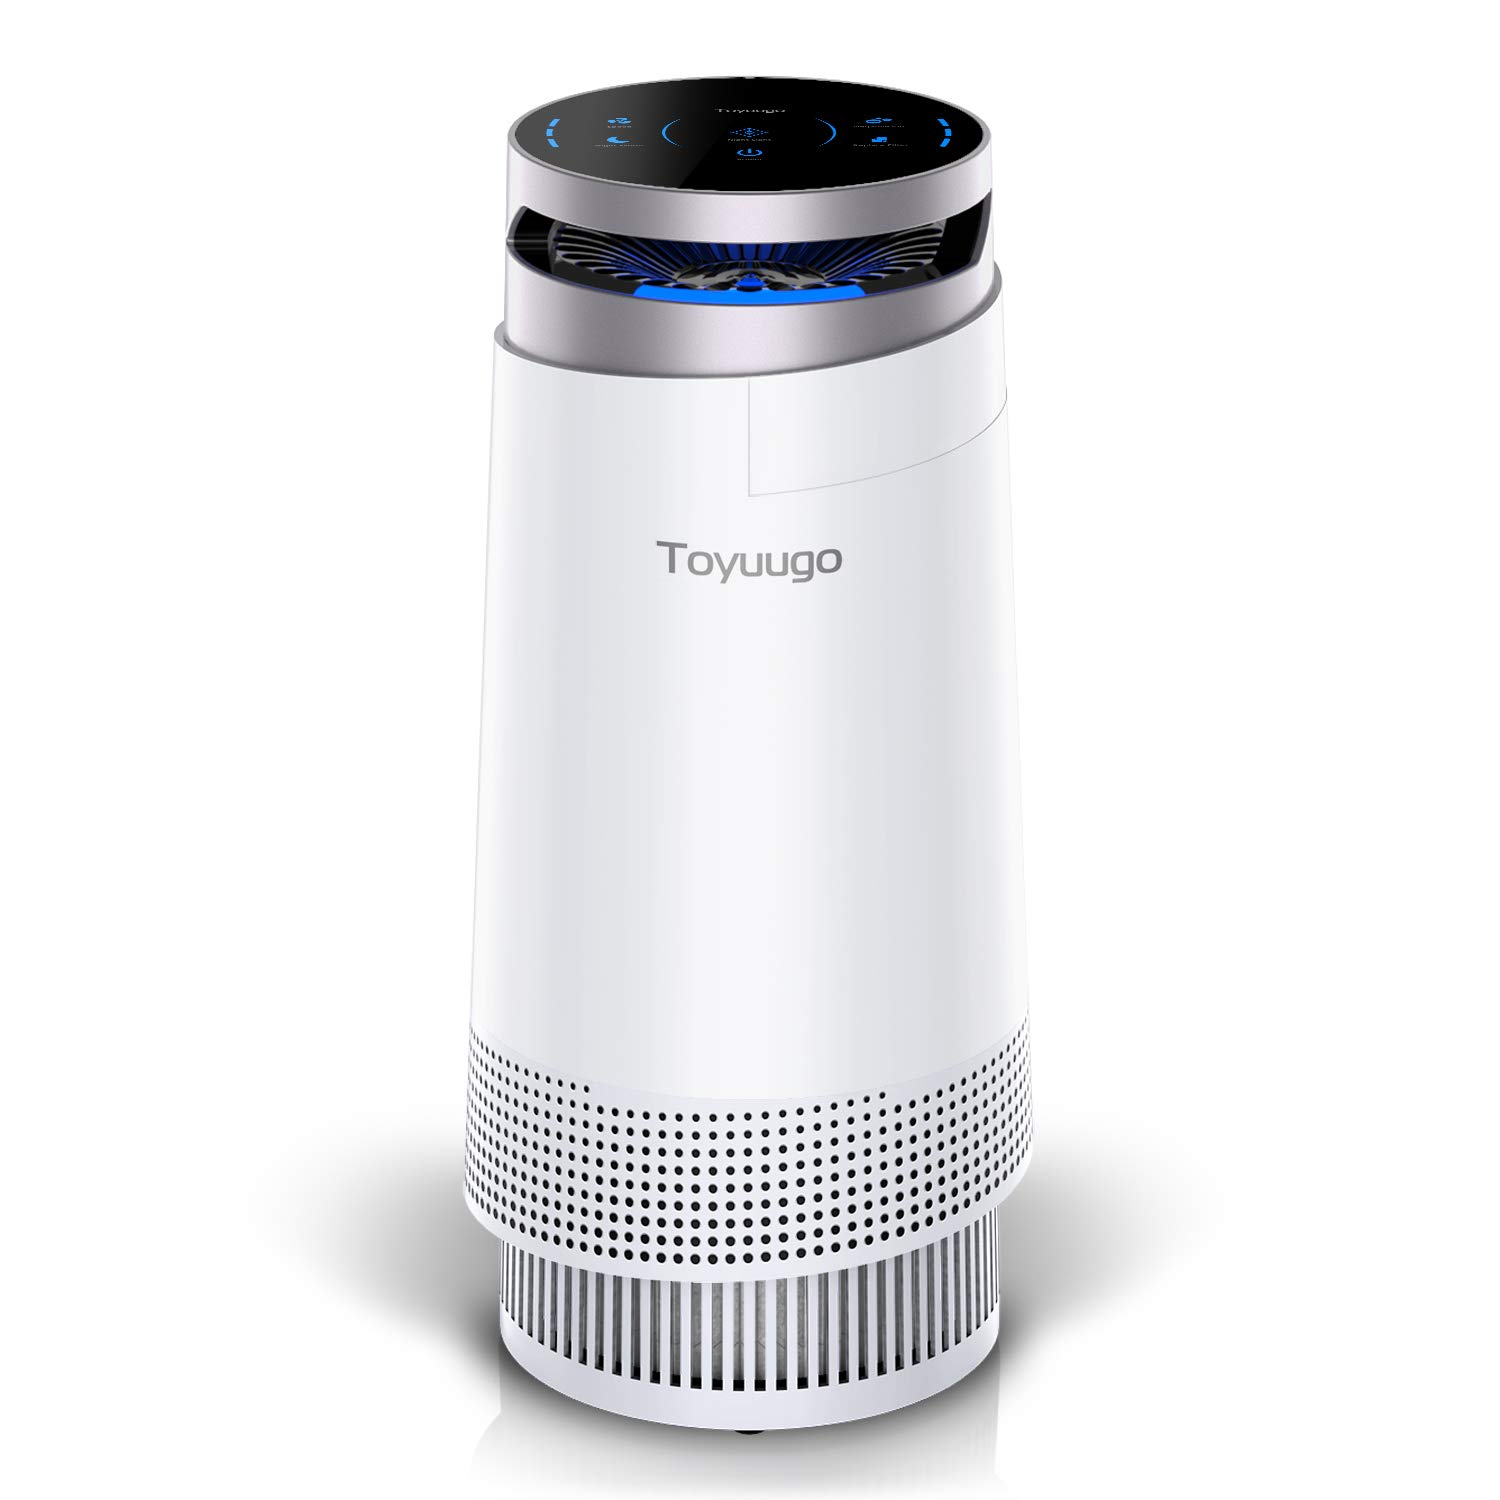 toyuugo Air Purifier, True HEPA Air Cleaner with Active Carbon Filter,  Negative Ion Purifiers Filtration with Night Light, No Ozone, PM Eliminator